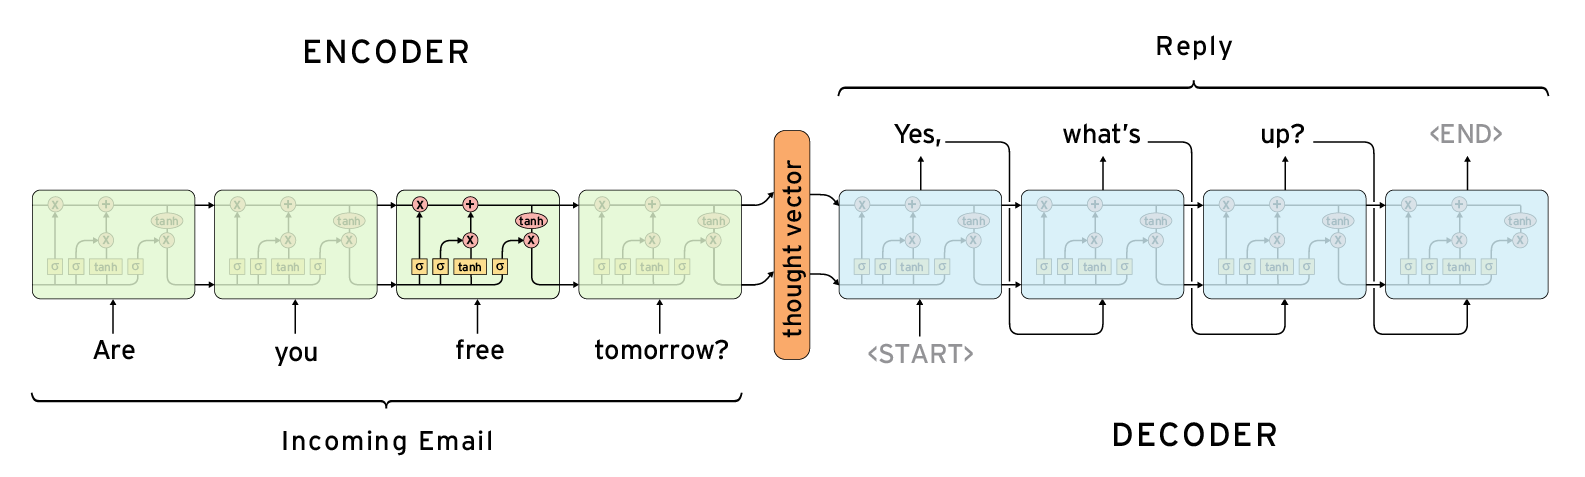 Sequence-to-sequence model image